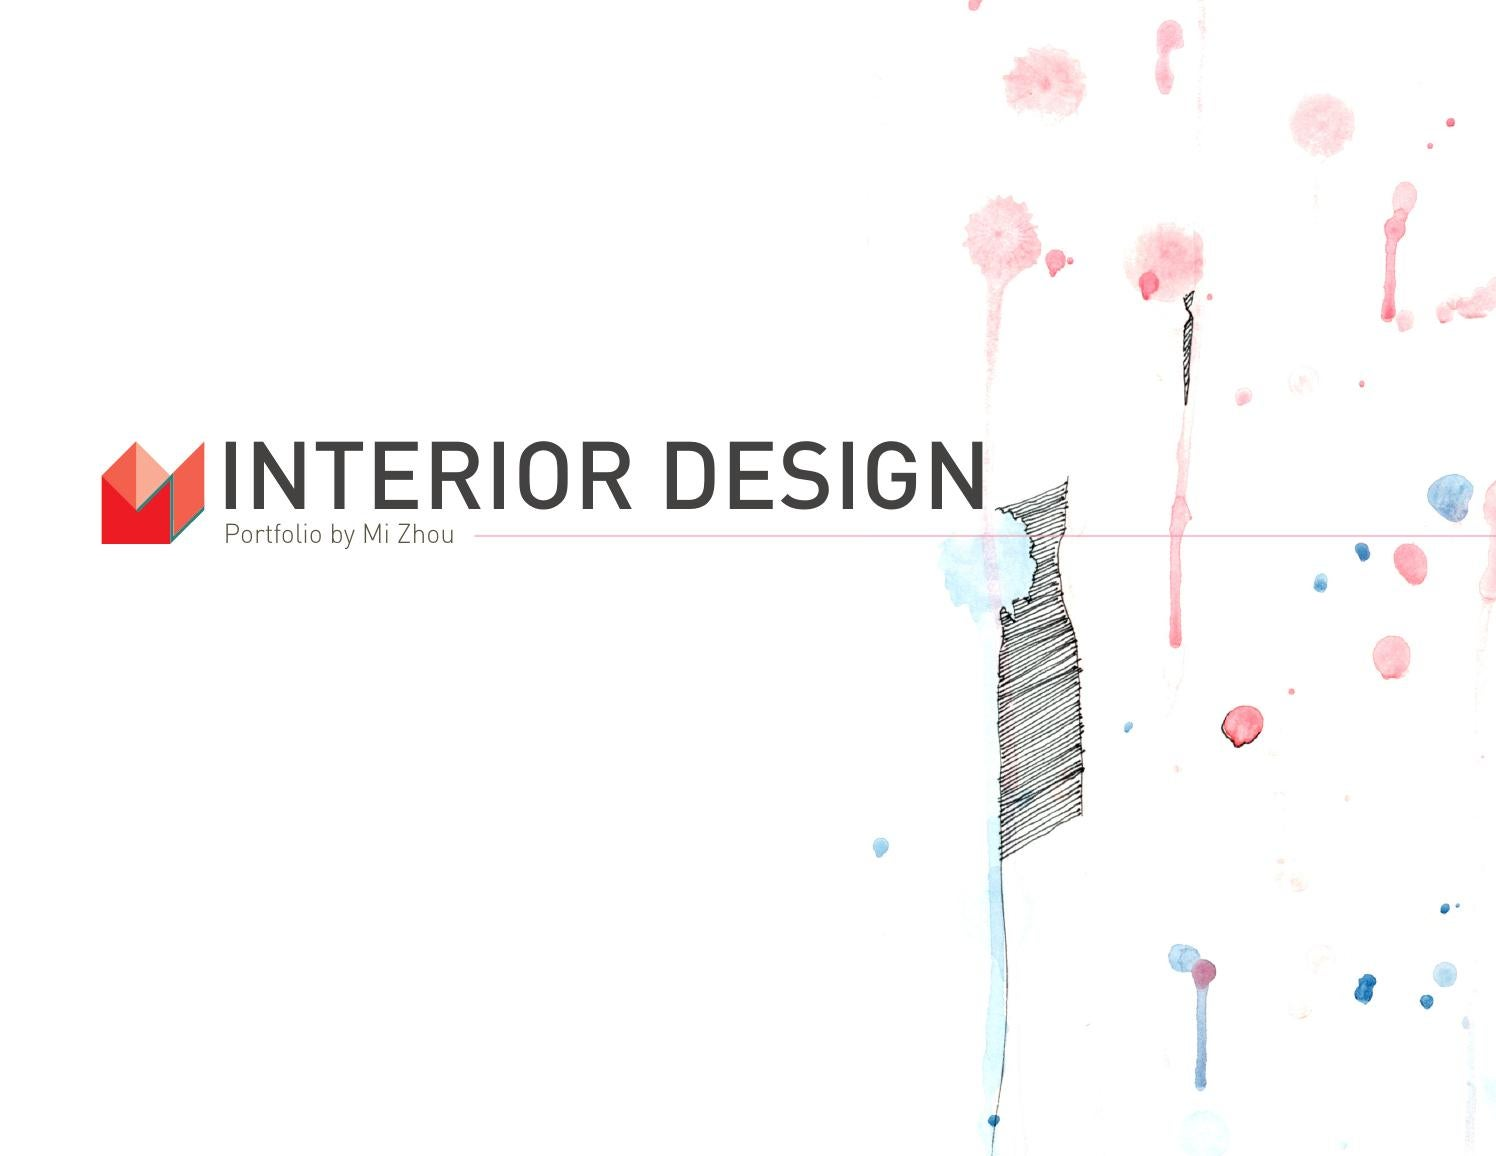 New interior design portfolio 2013 by mia zhou issuu for Interior design portfolio